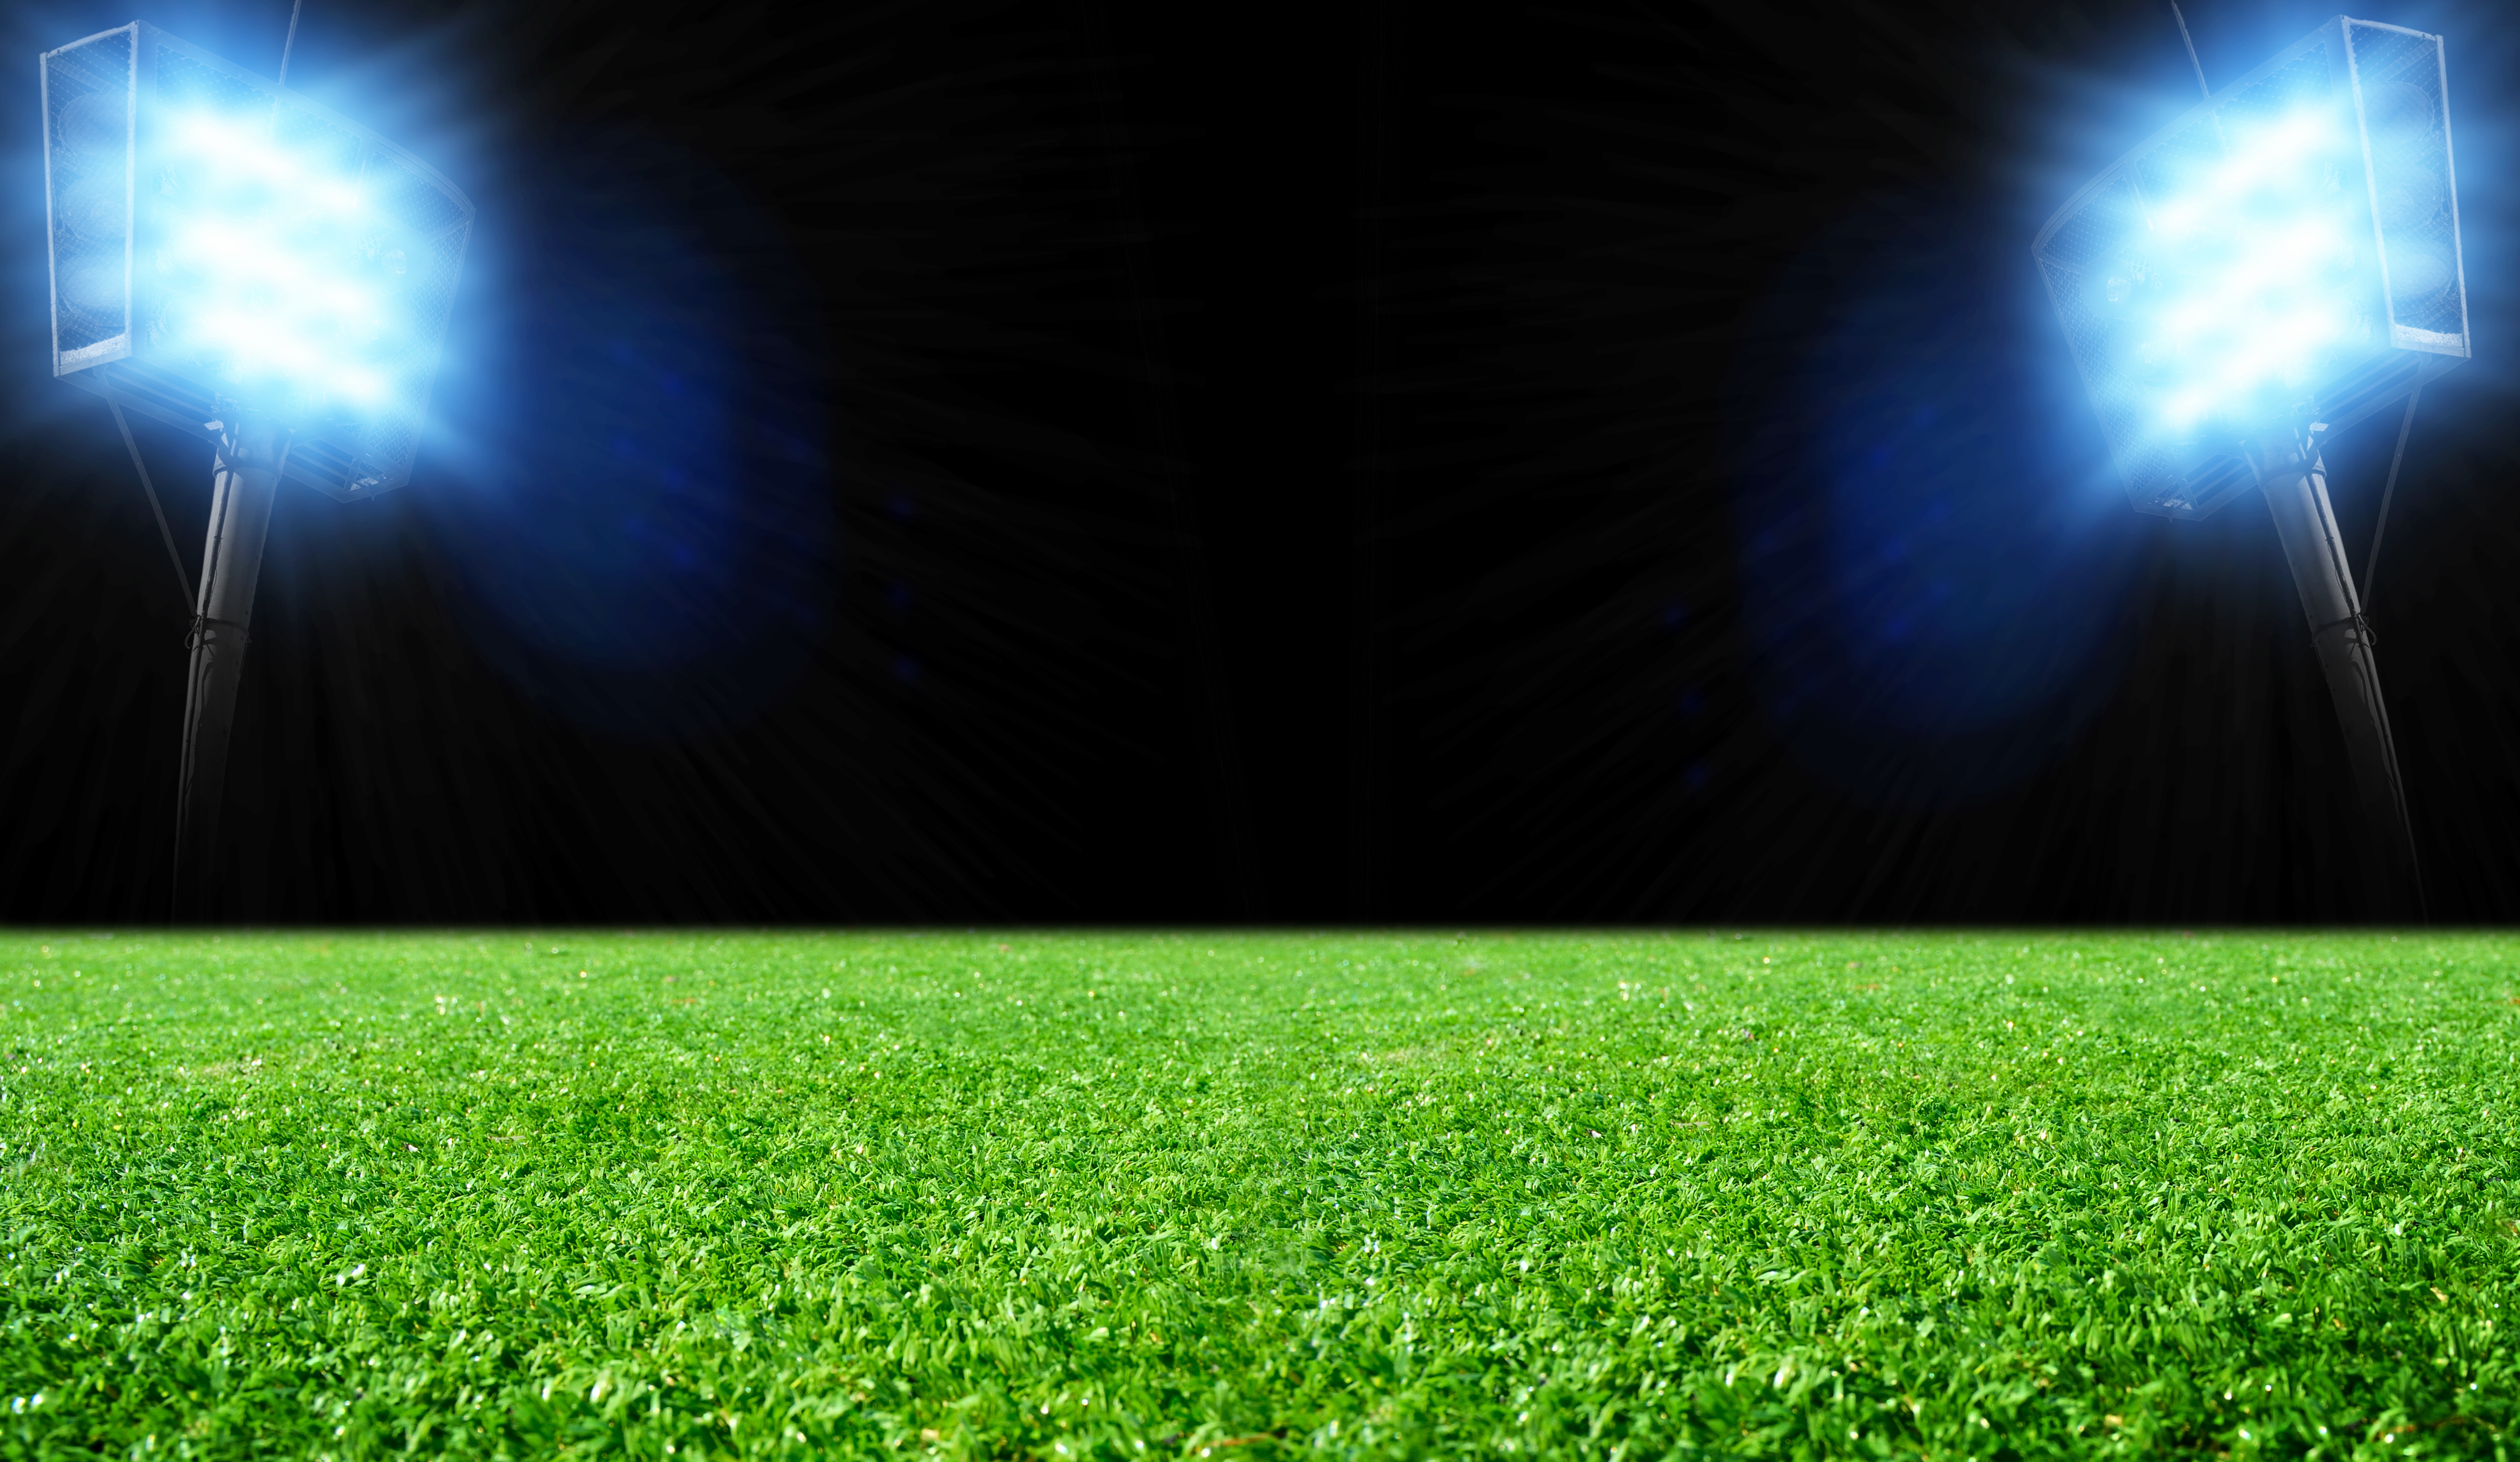 Spotlights At The Stadium Wallpapers High Quality ... Soccer Backgrounds For Photography